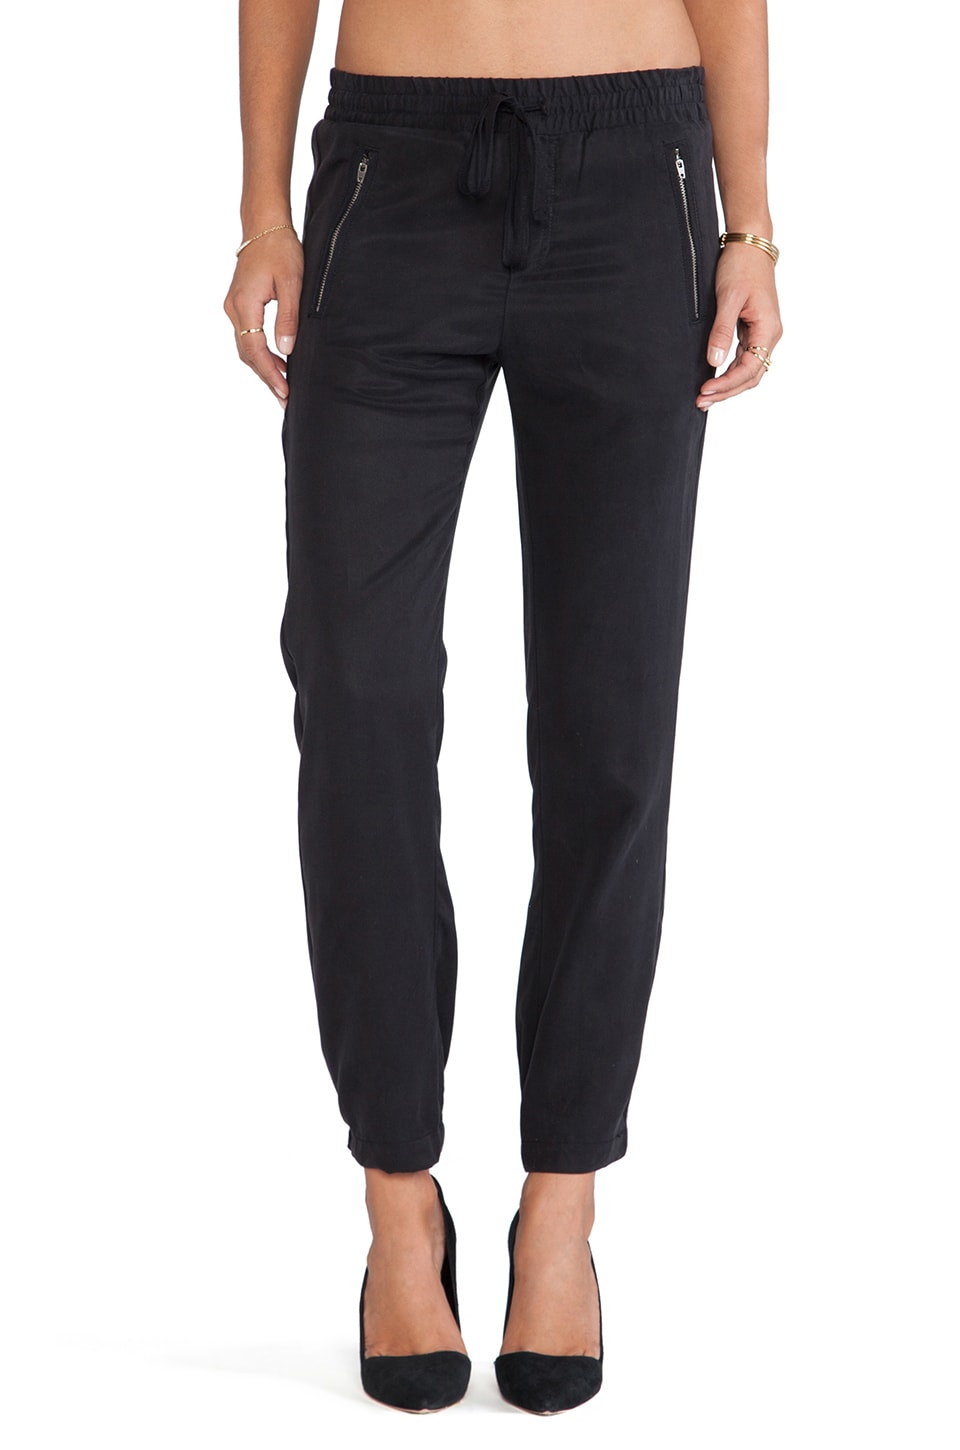 Michael Stars Drawstring Pull-on Pant with Zippers in Black